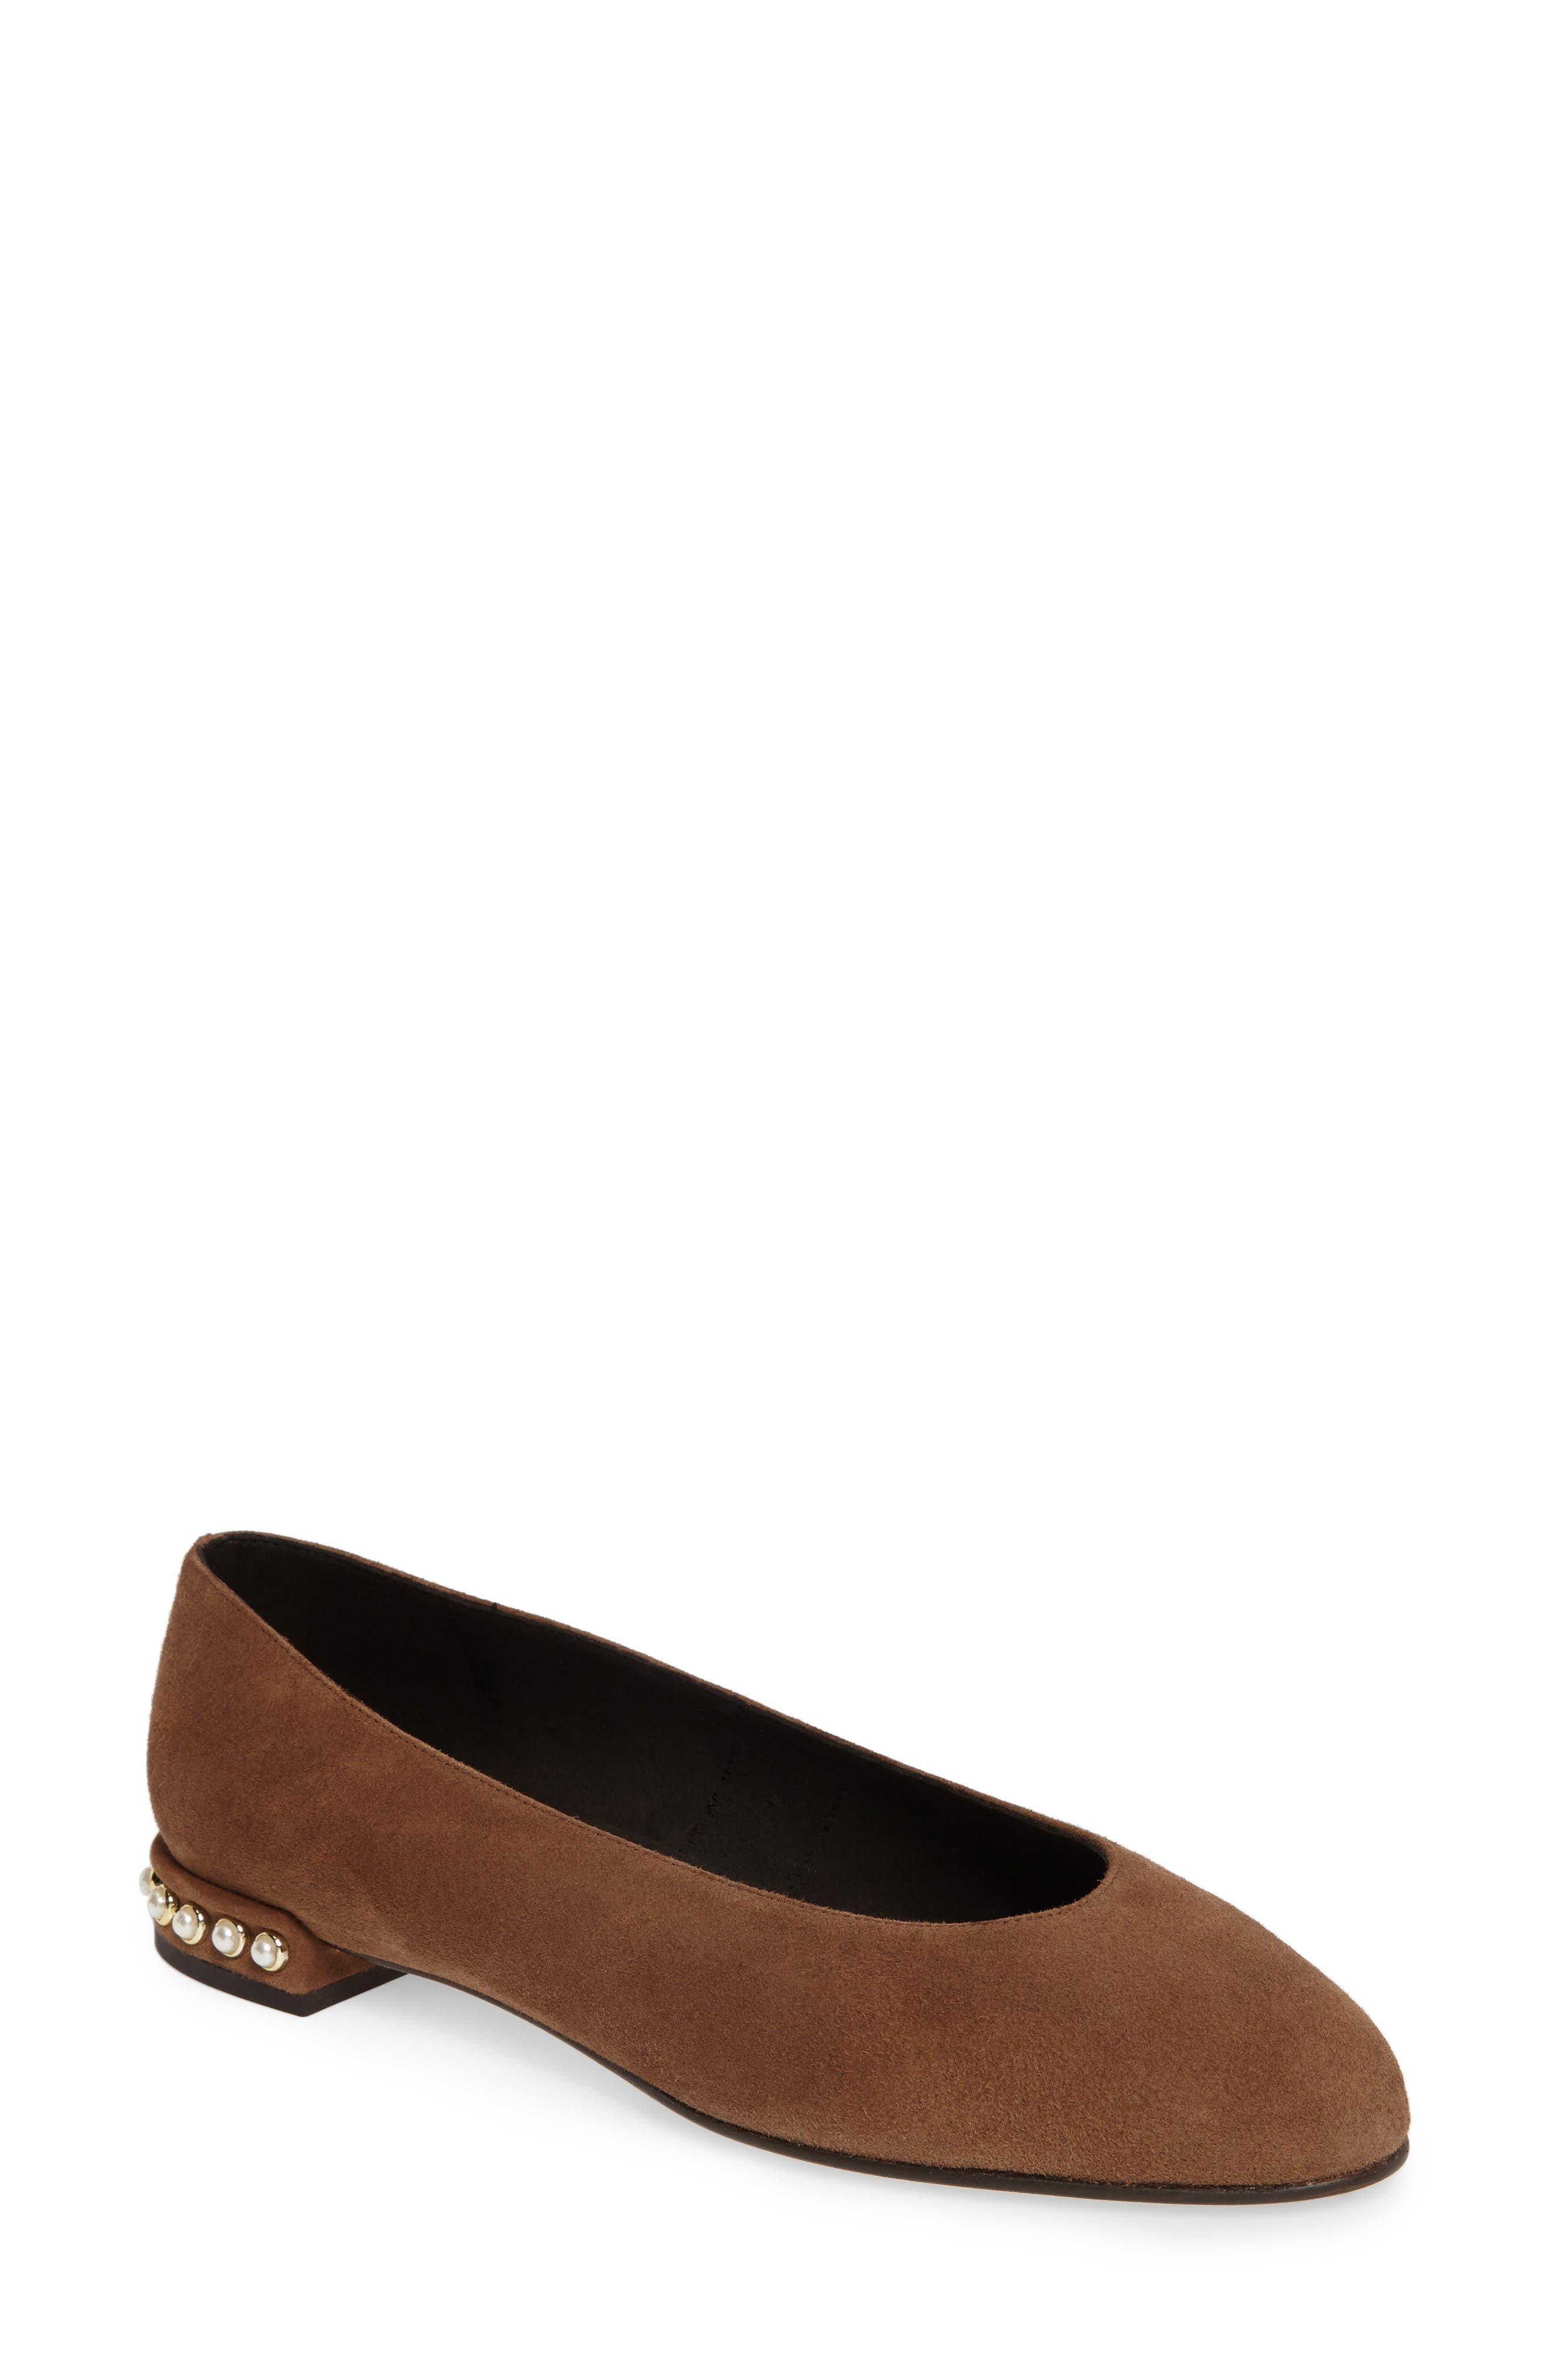 Chicpearl Ballet Flat,                             Main thumbnail 1, color,                             Nutmeg Suede